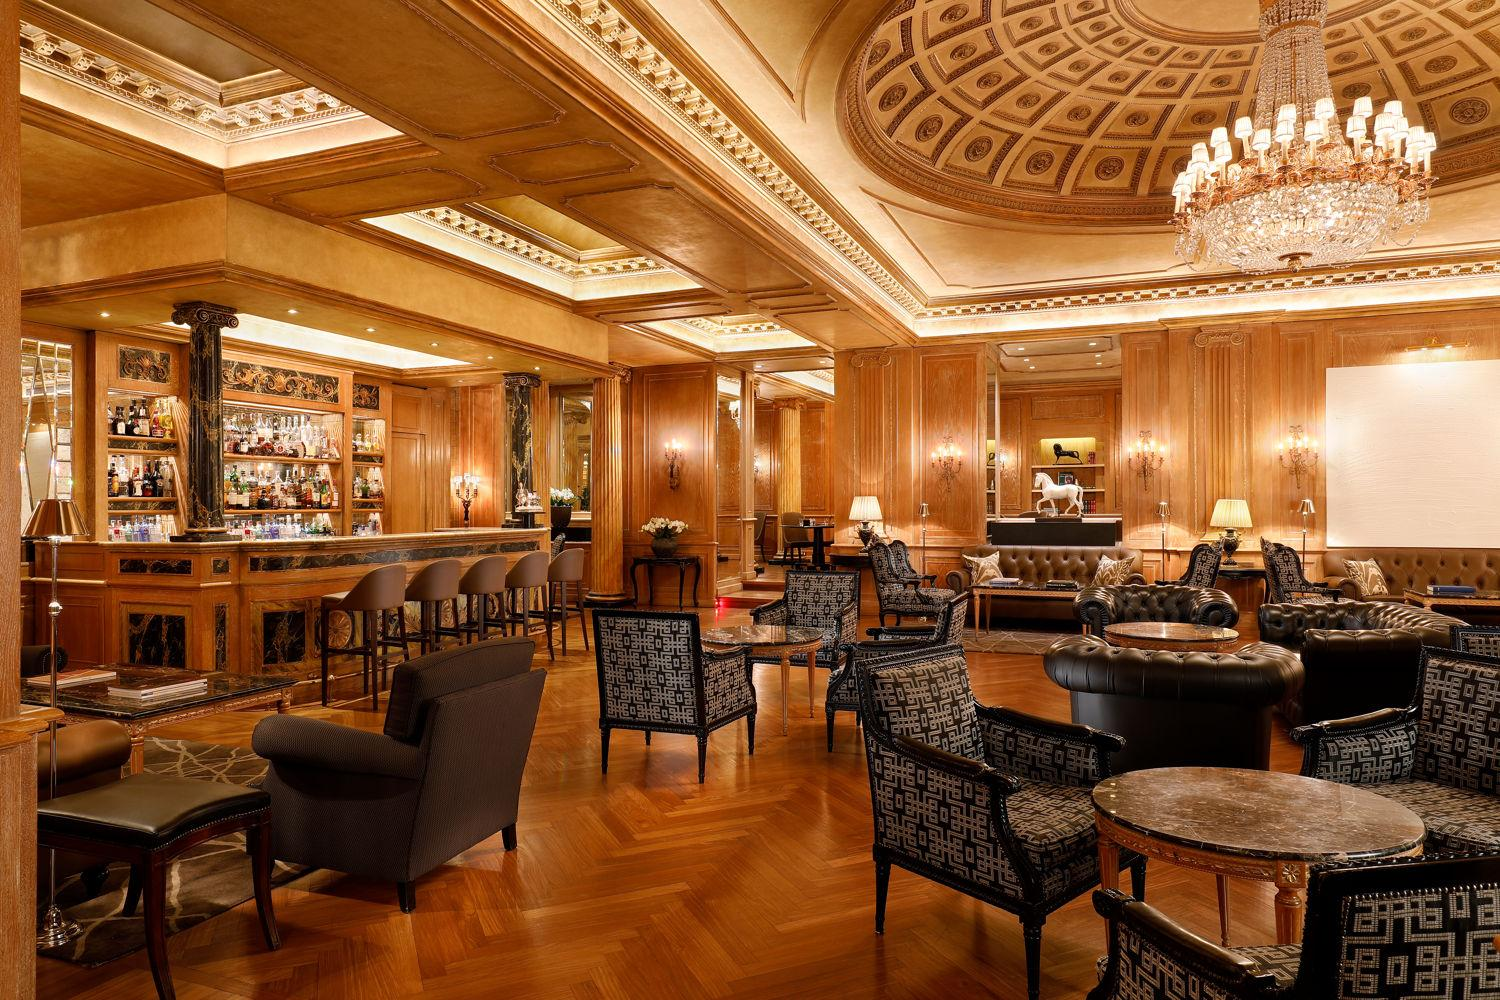 Westwing, The Westin Palace Hotel, Arte, Design, Made in Italy, Milano